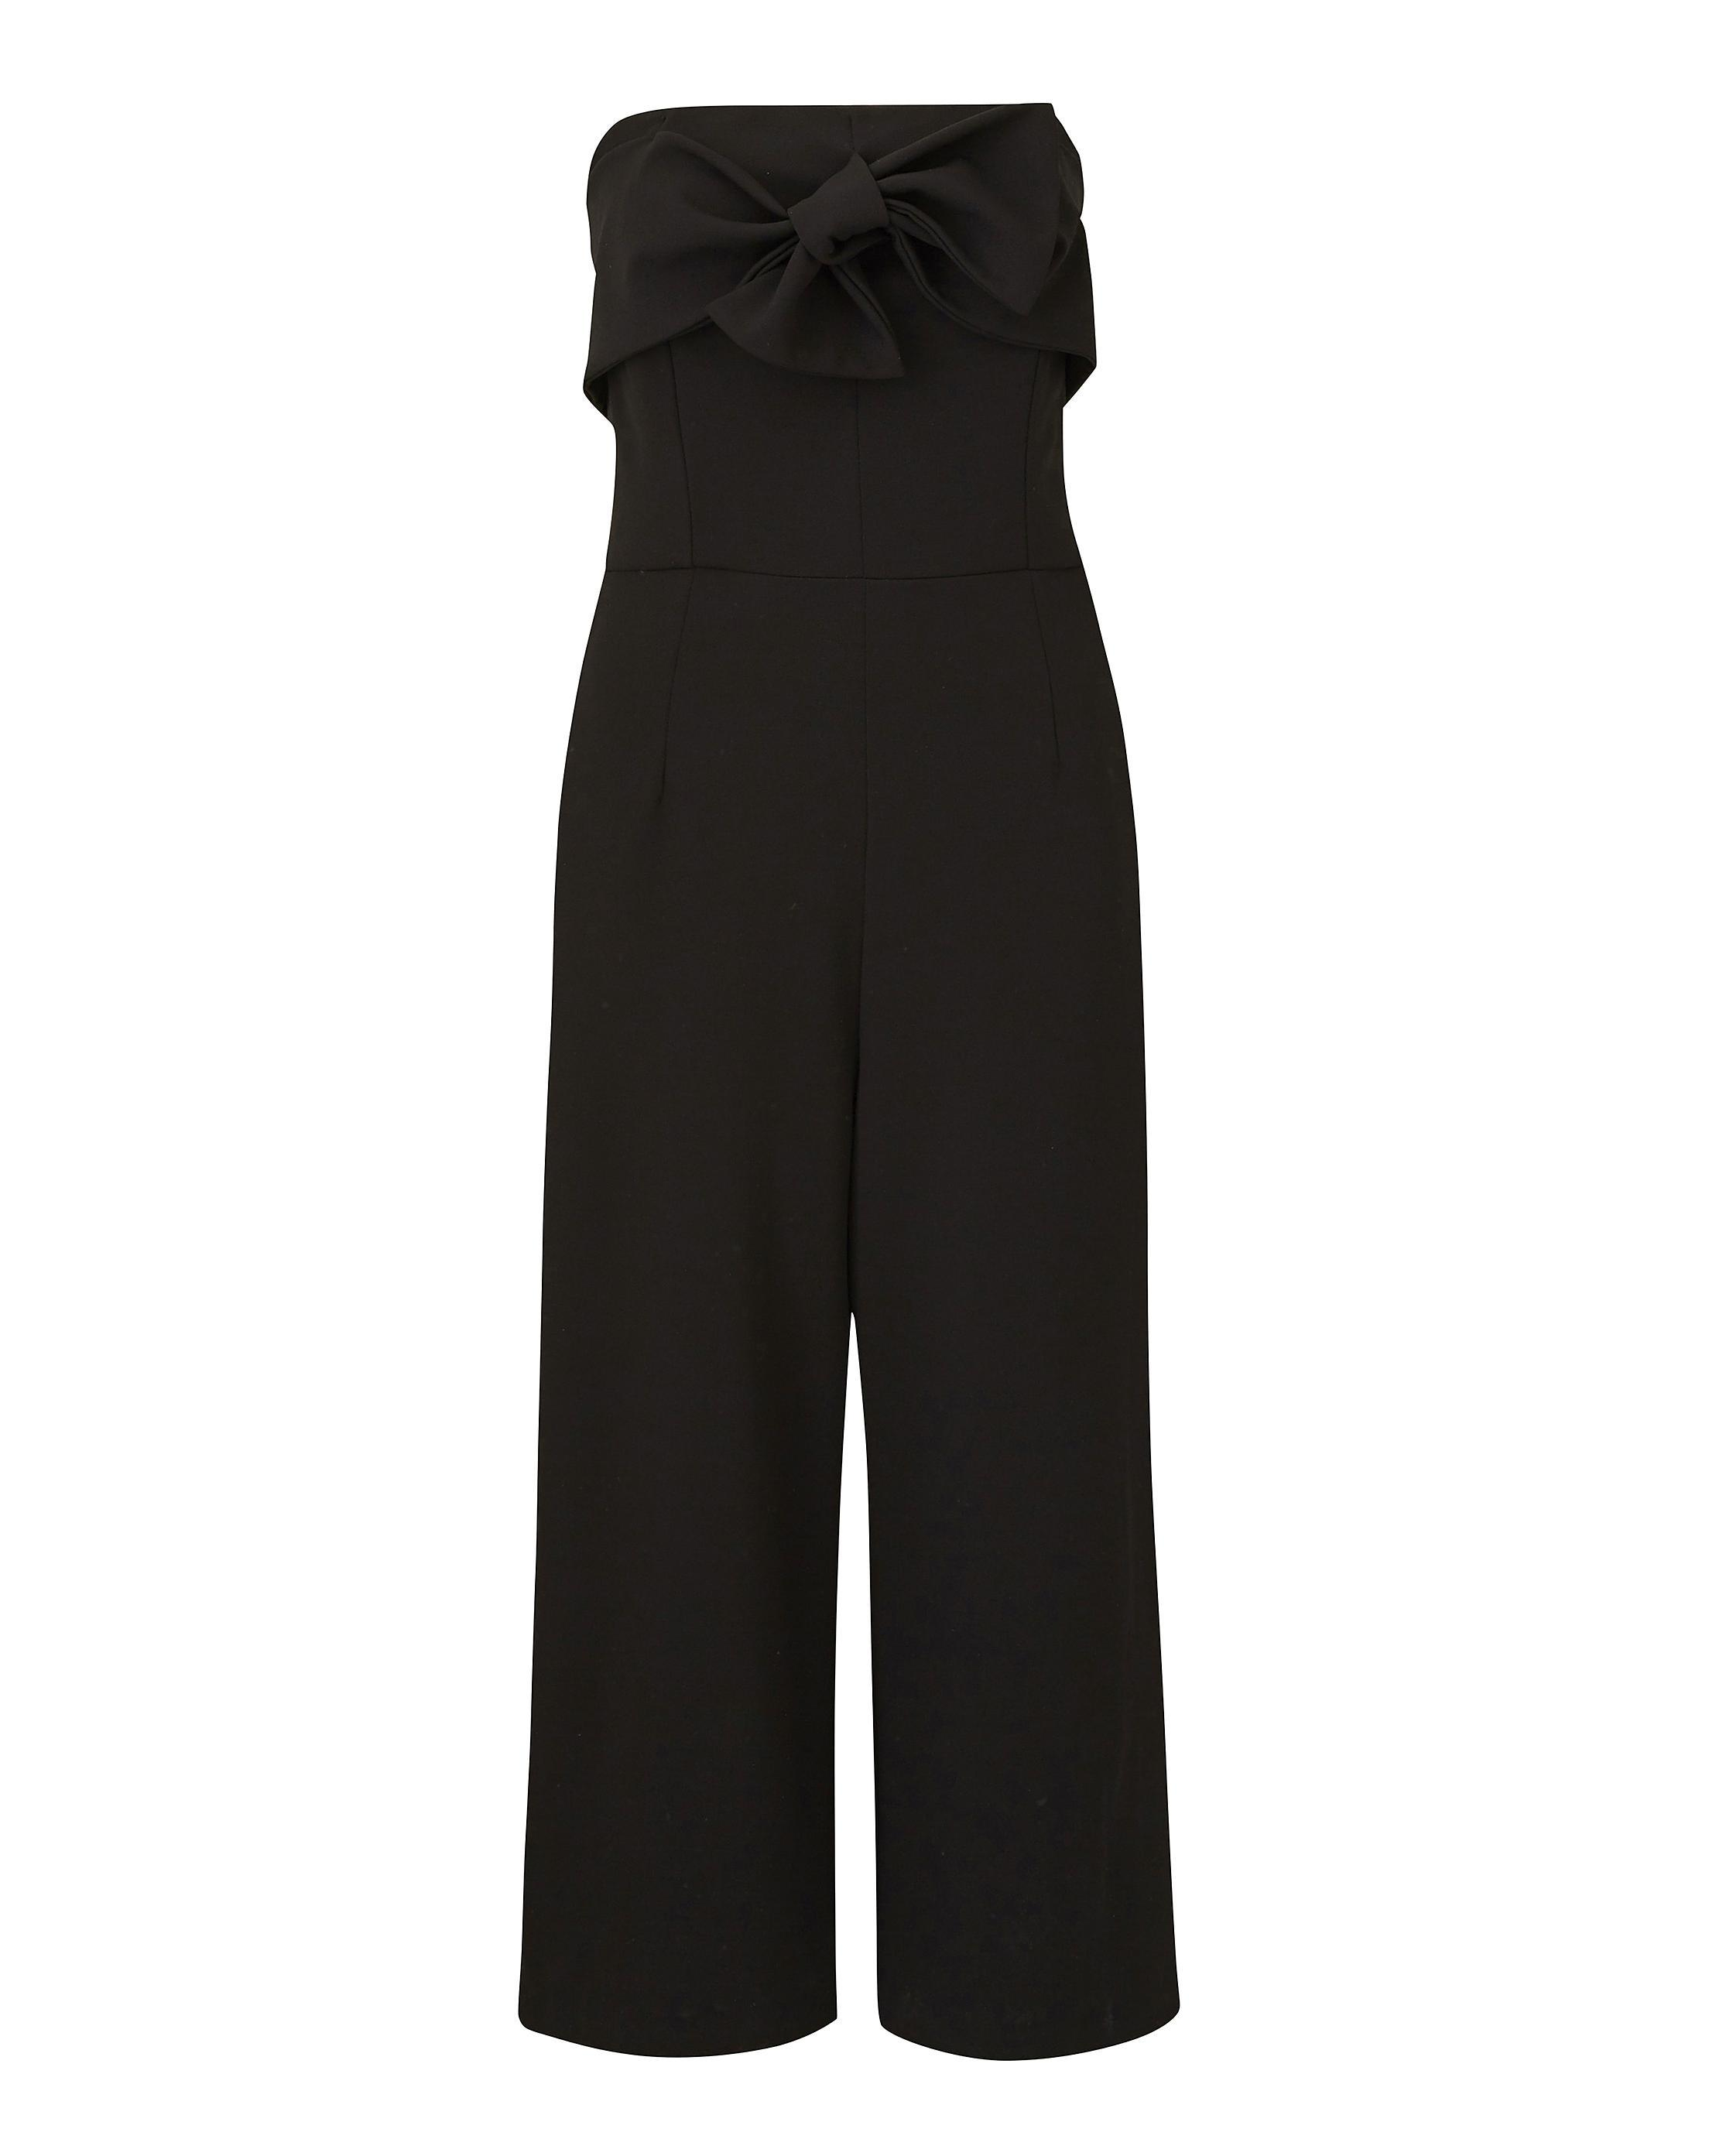 dea41f241bb Lyst - Simply Be Joanna Hope Bow Detail Jumpsuit in Black